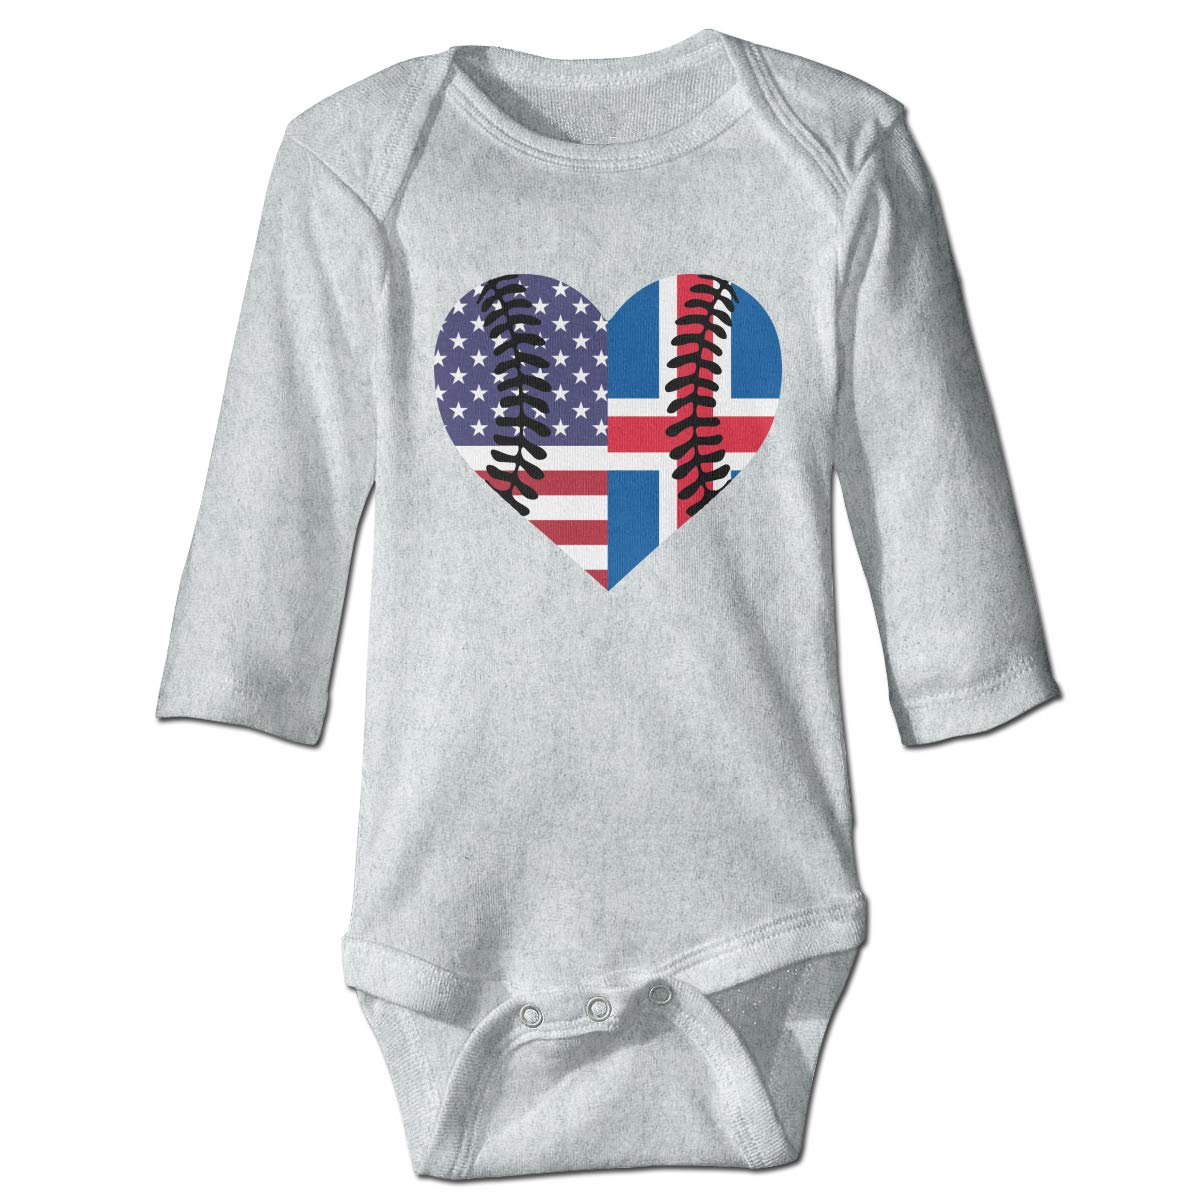 A14UBP Infant Baby Boys Girls Long Sleeve Baby Clothes Iceland USA Flag Half Baseball Unisex Button Playsuit Outfit Clothes